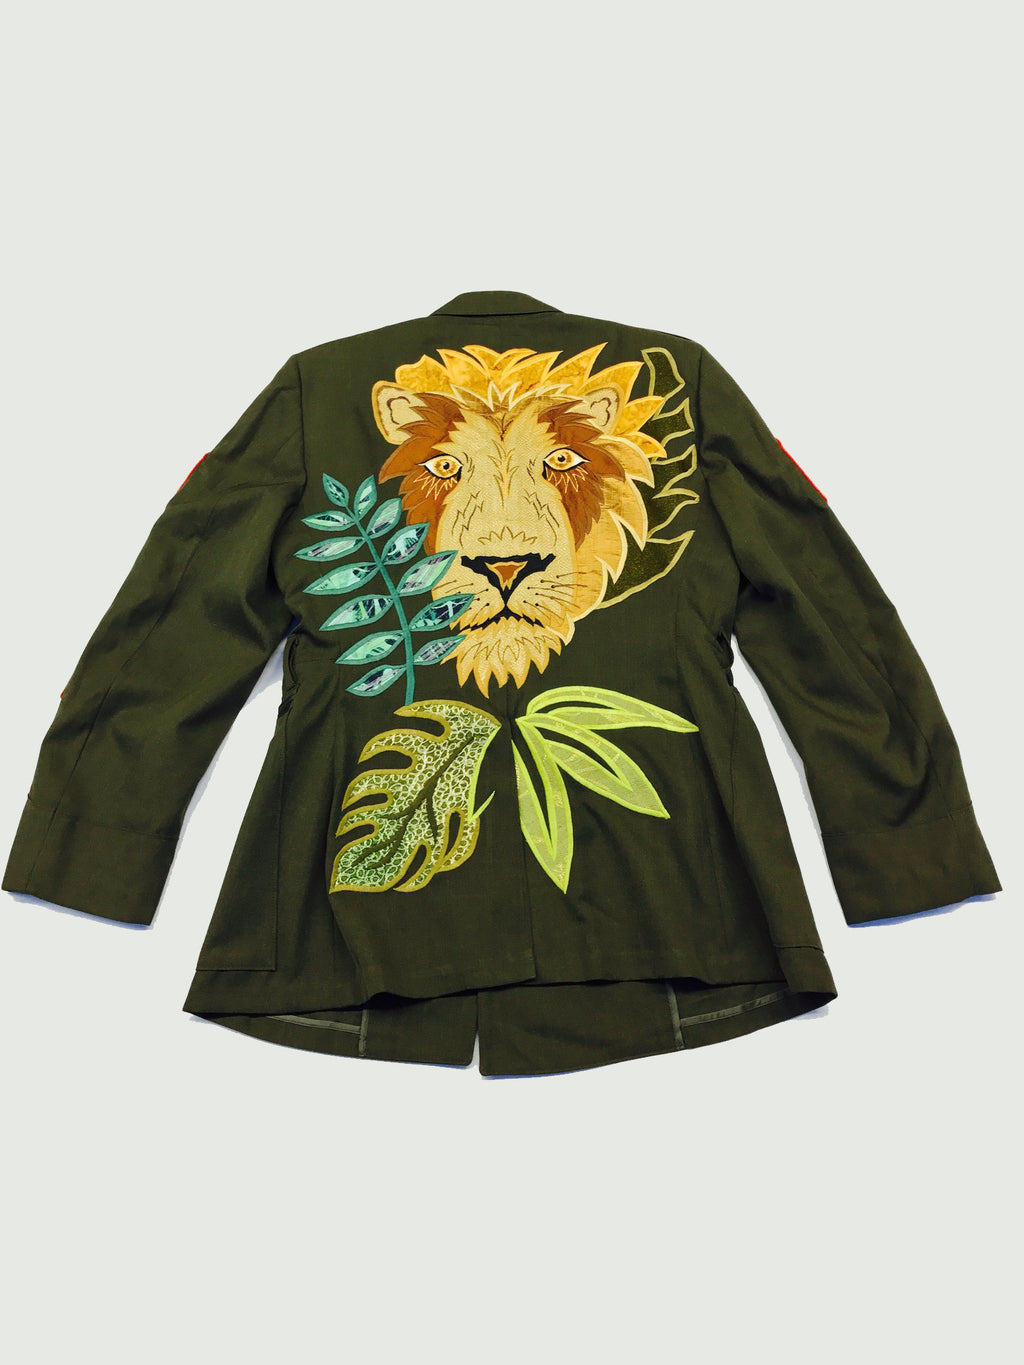 Lion Army Jacket